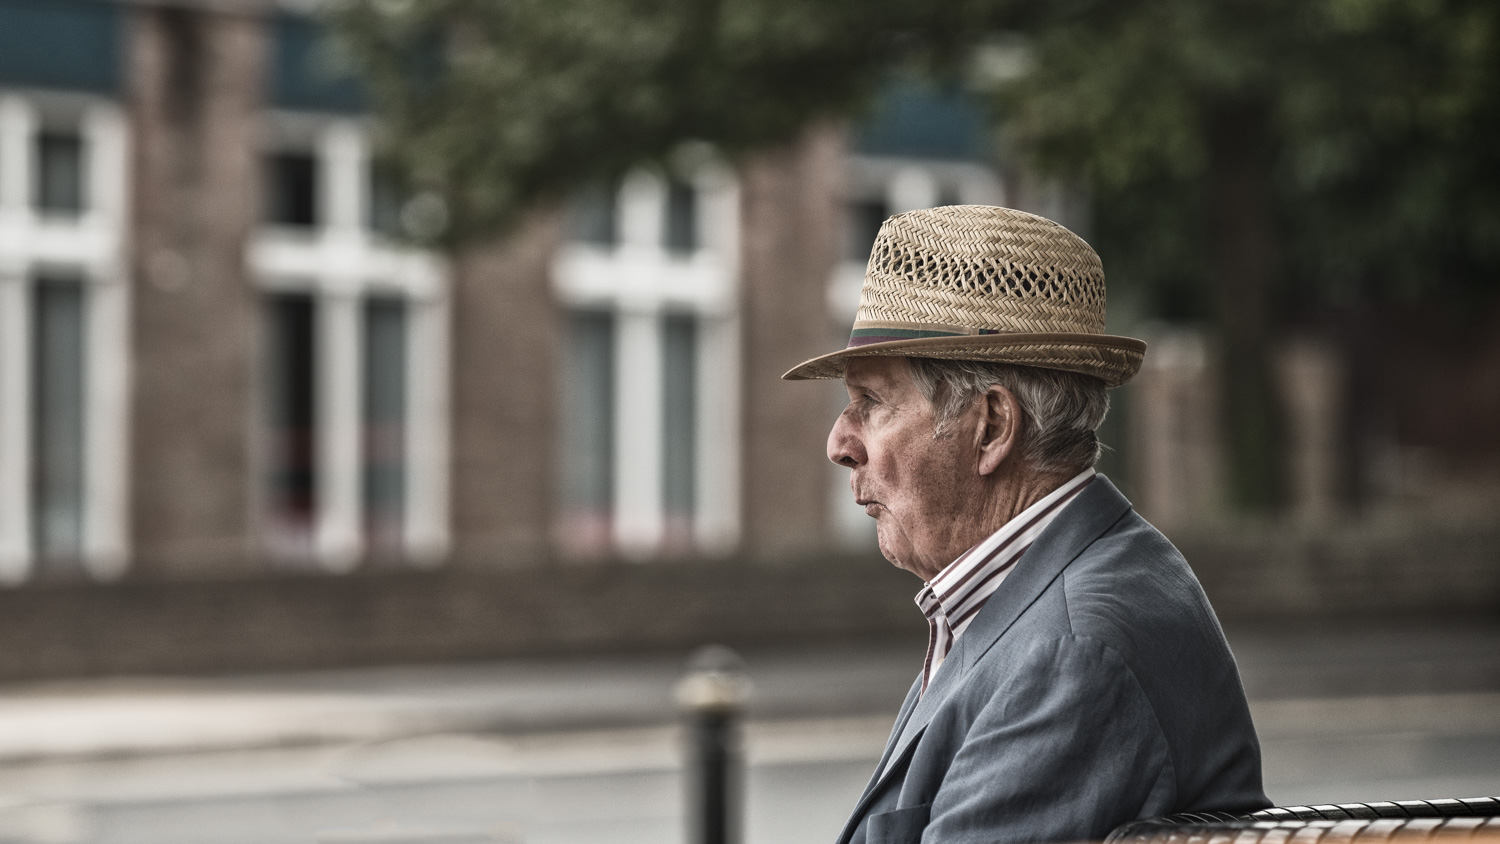 Contemplation - Street Photography